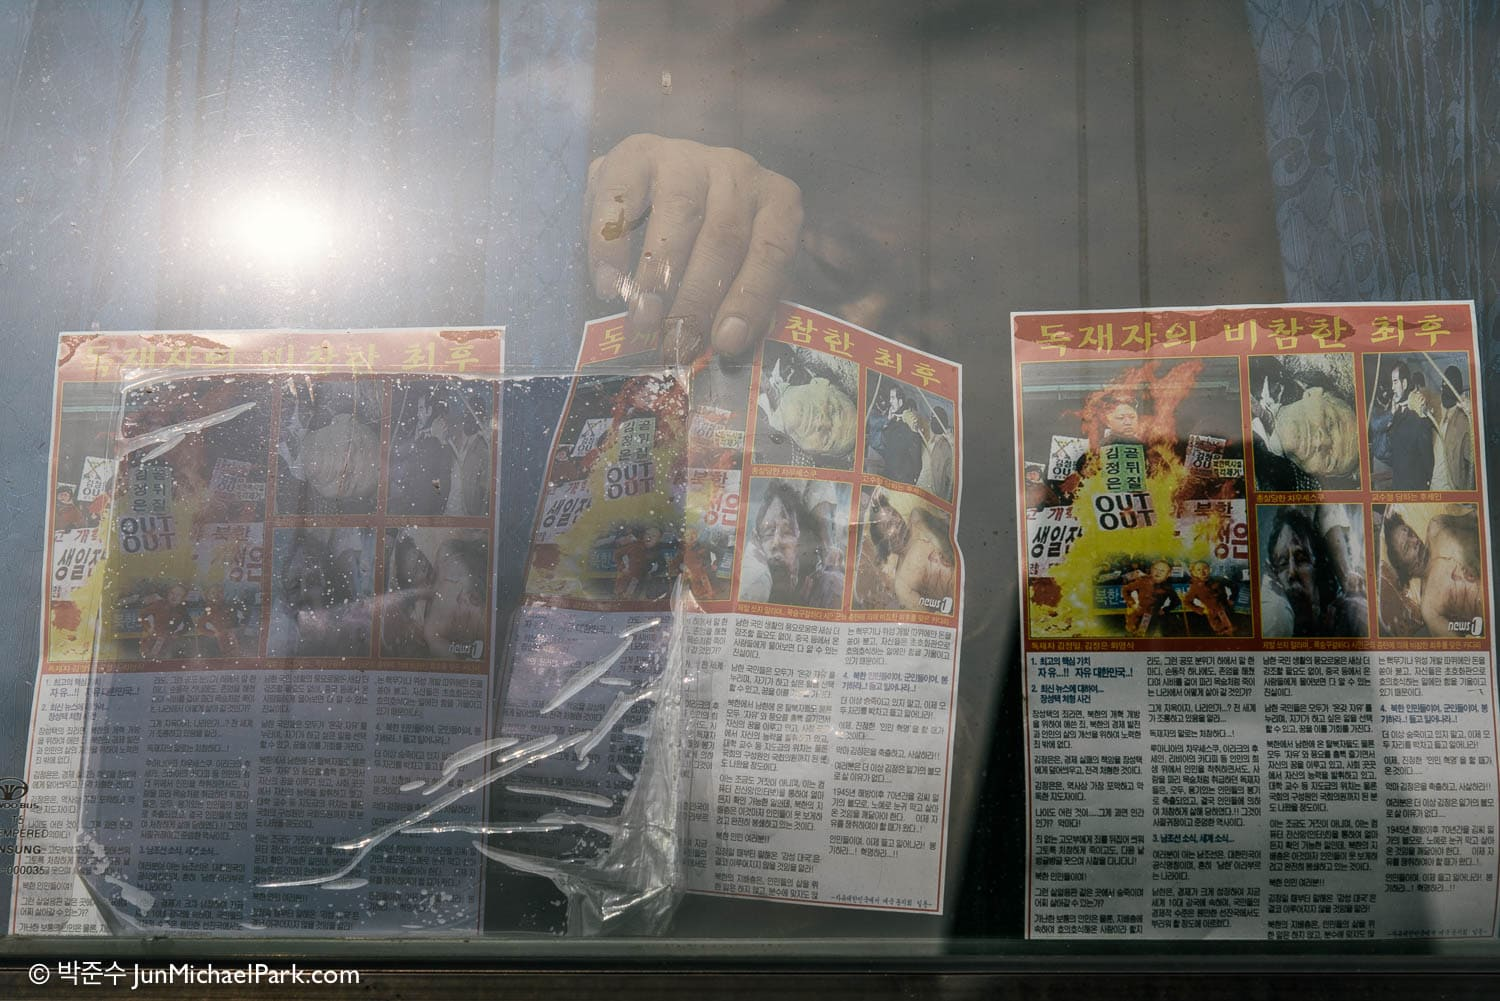 "An activist shows off the much controversial Anti-North Korea propaganda leaflets through the bus window. The title reads: ""The Miserable End of a Dictator."" Imjingak Peace Park, Paju, South Korea, Oct 25, 2014."